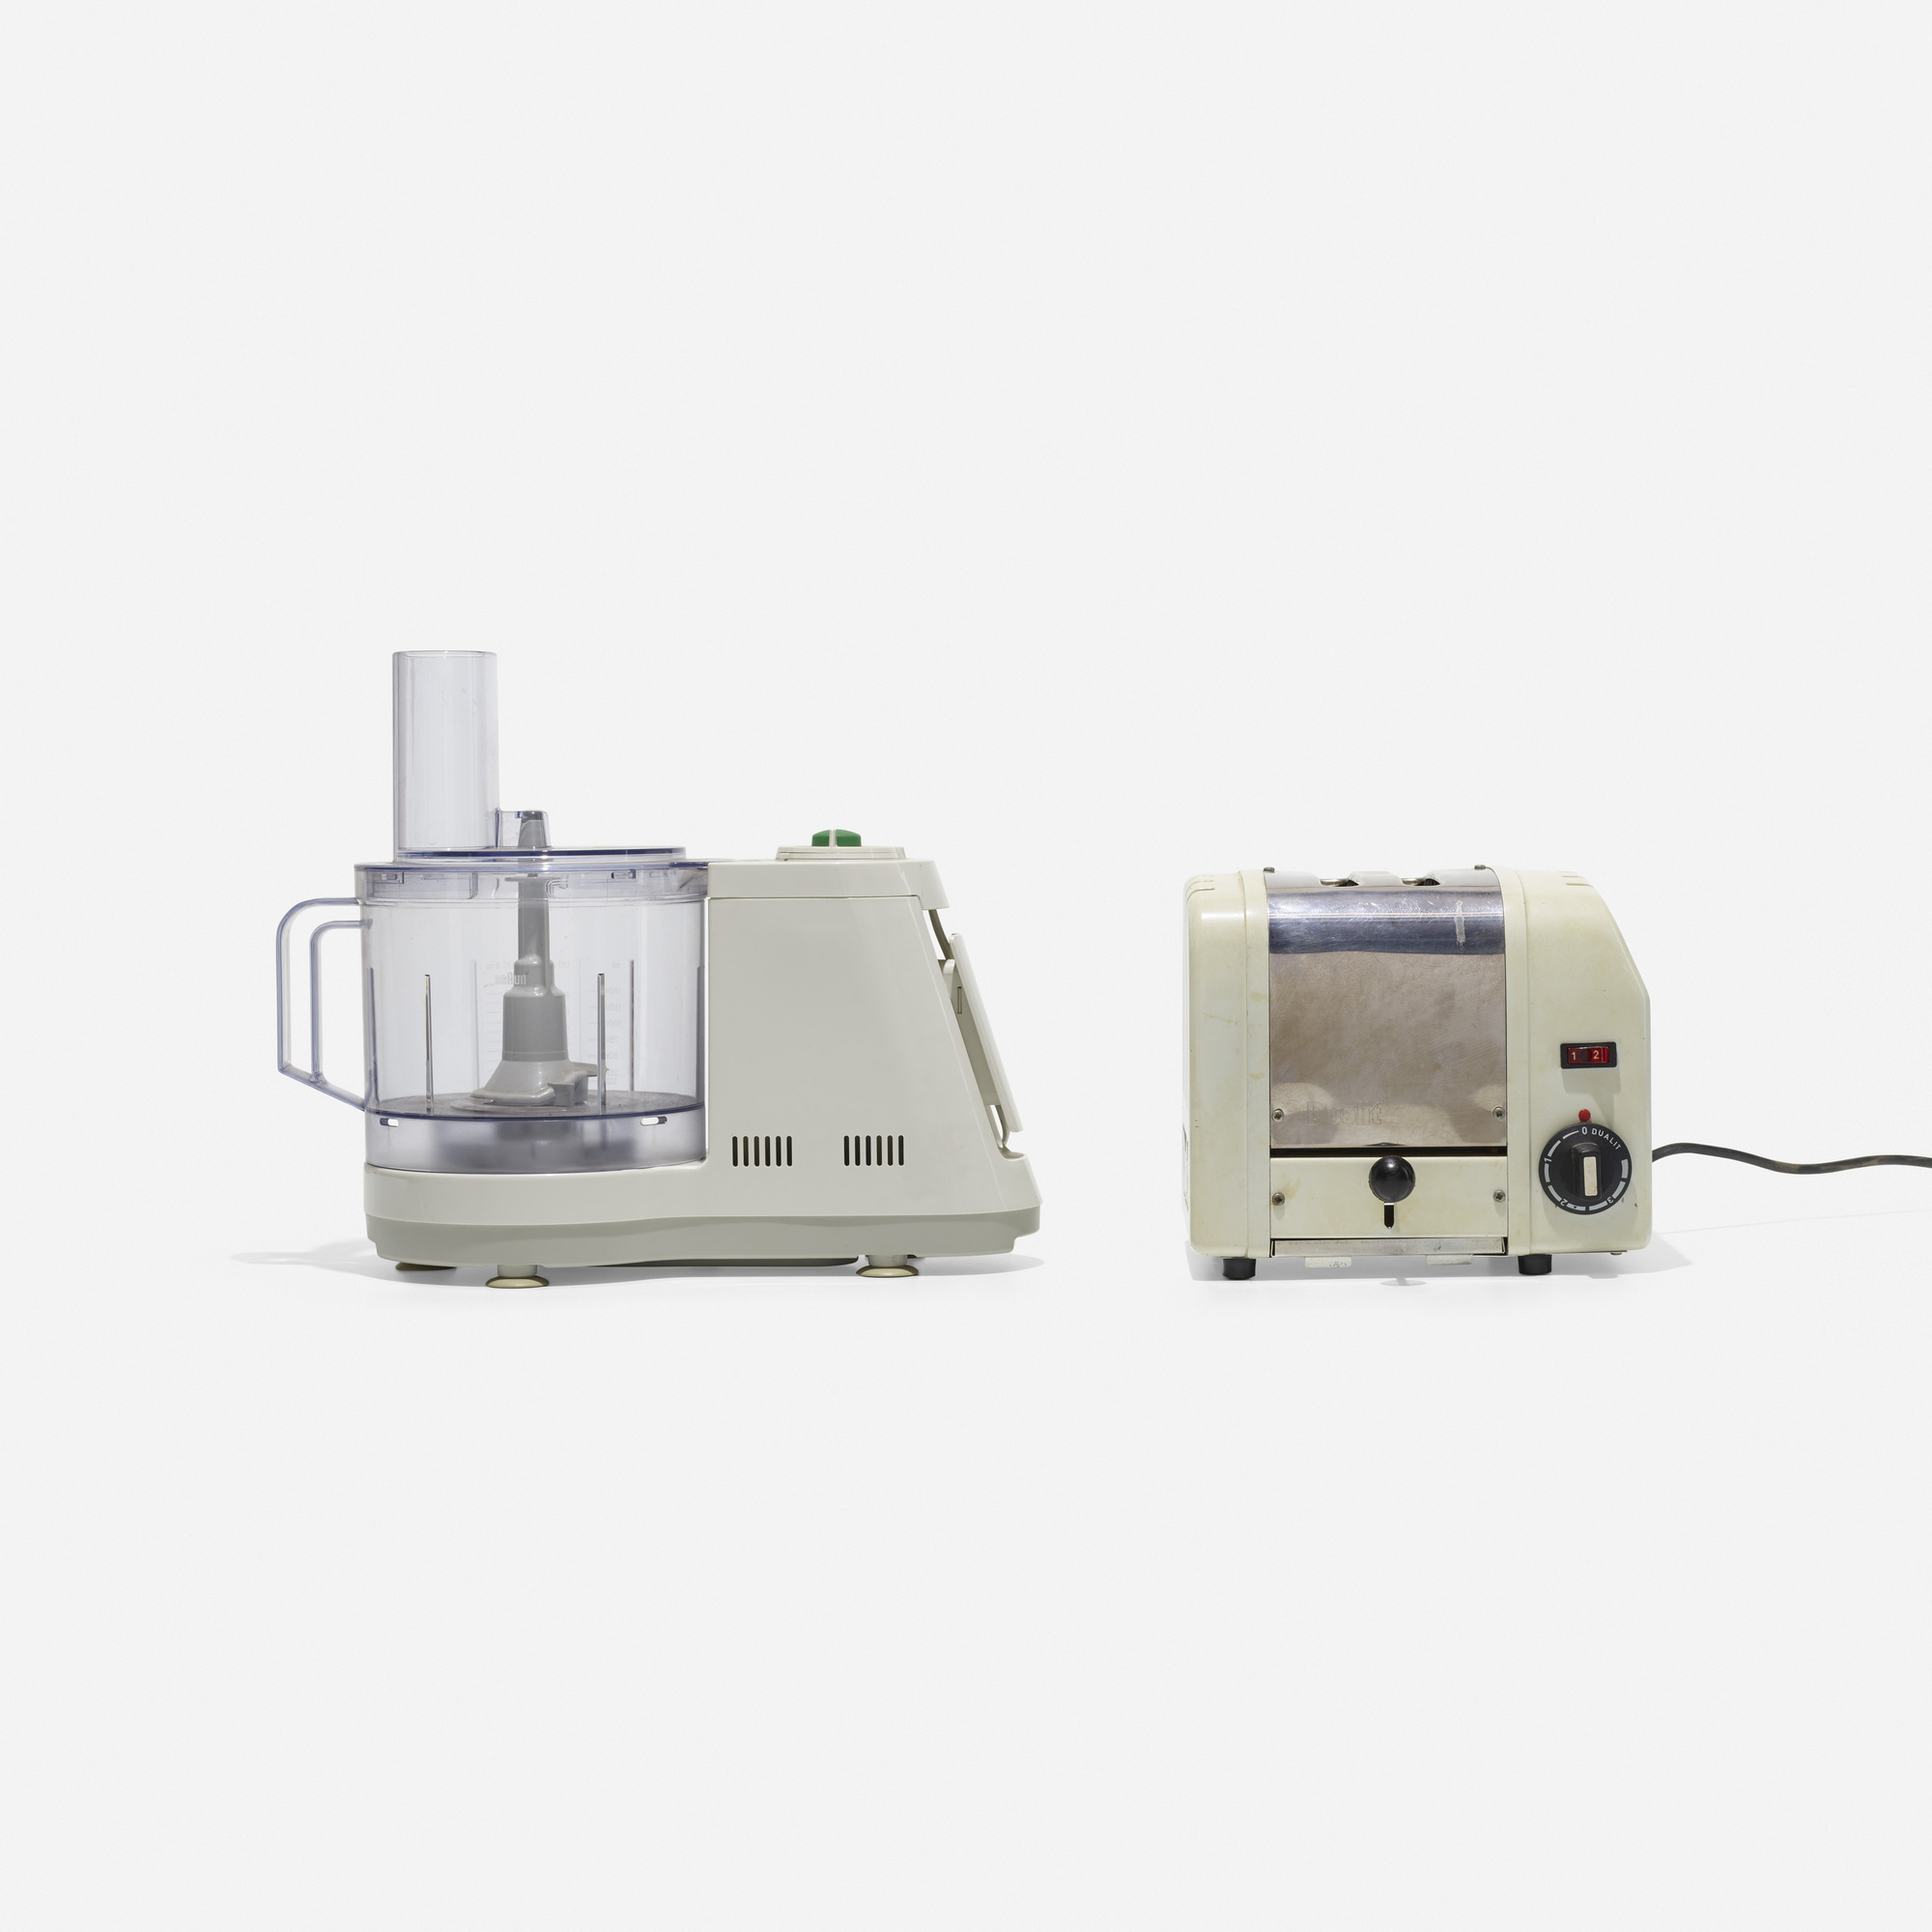 158: Braun and Dualit / kitchen appliances, set of two (1 of 1)